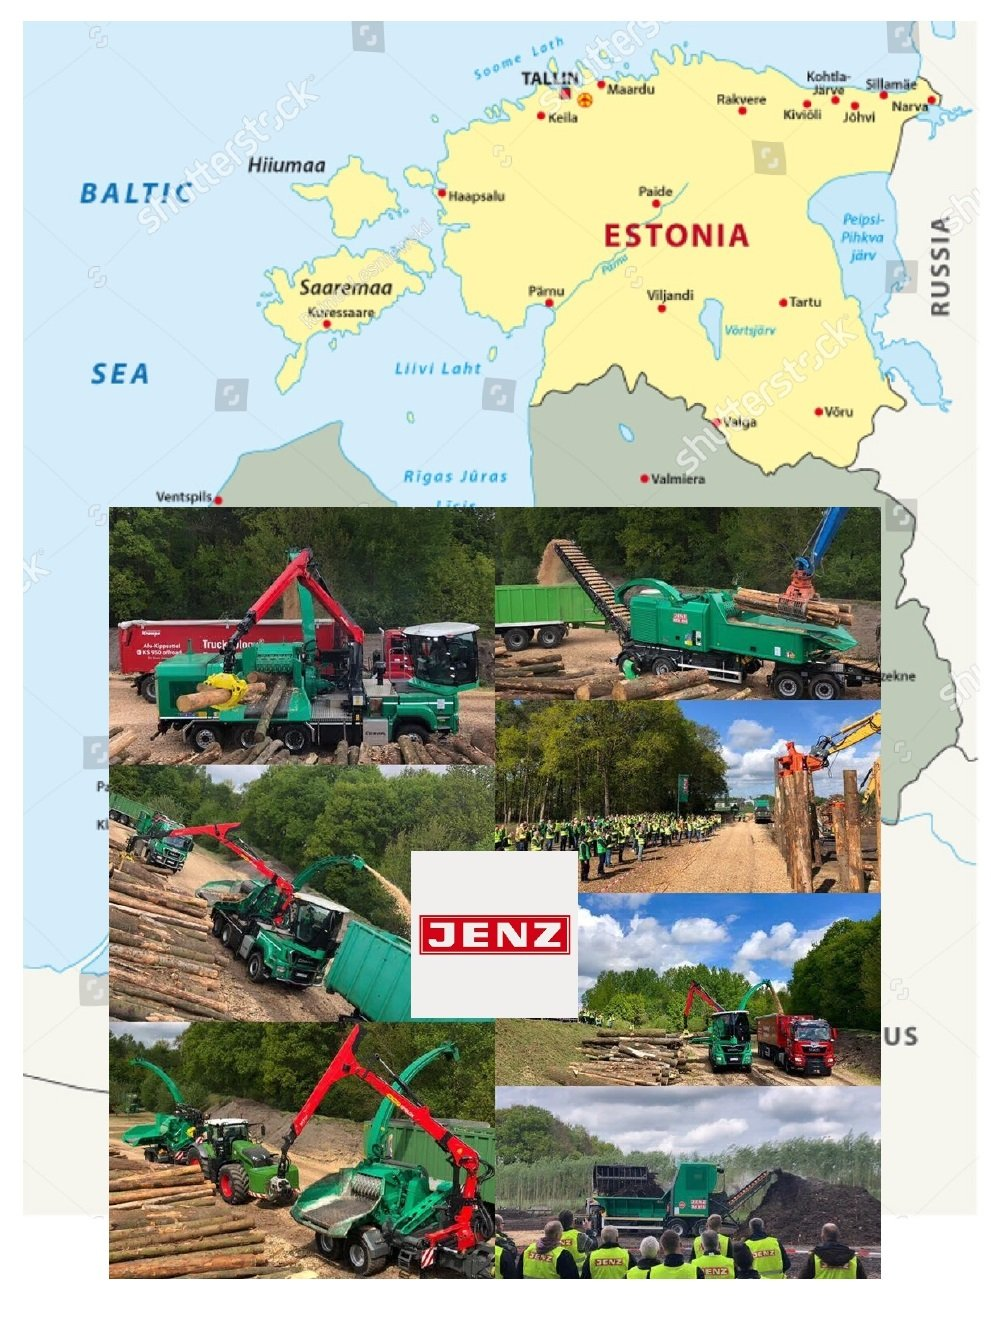 Estonia: a lot of heat generated from woody biomass